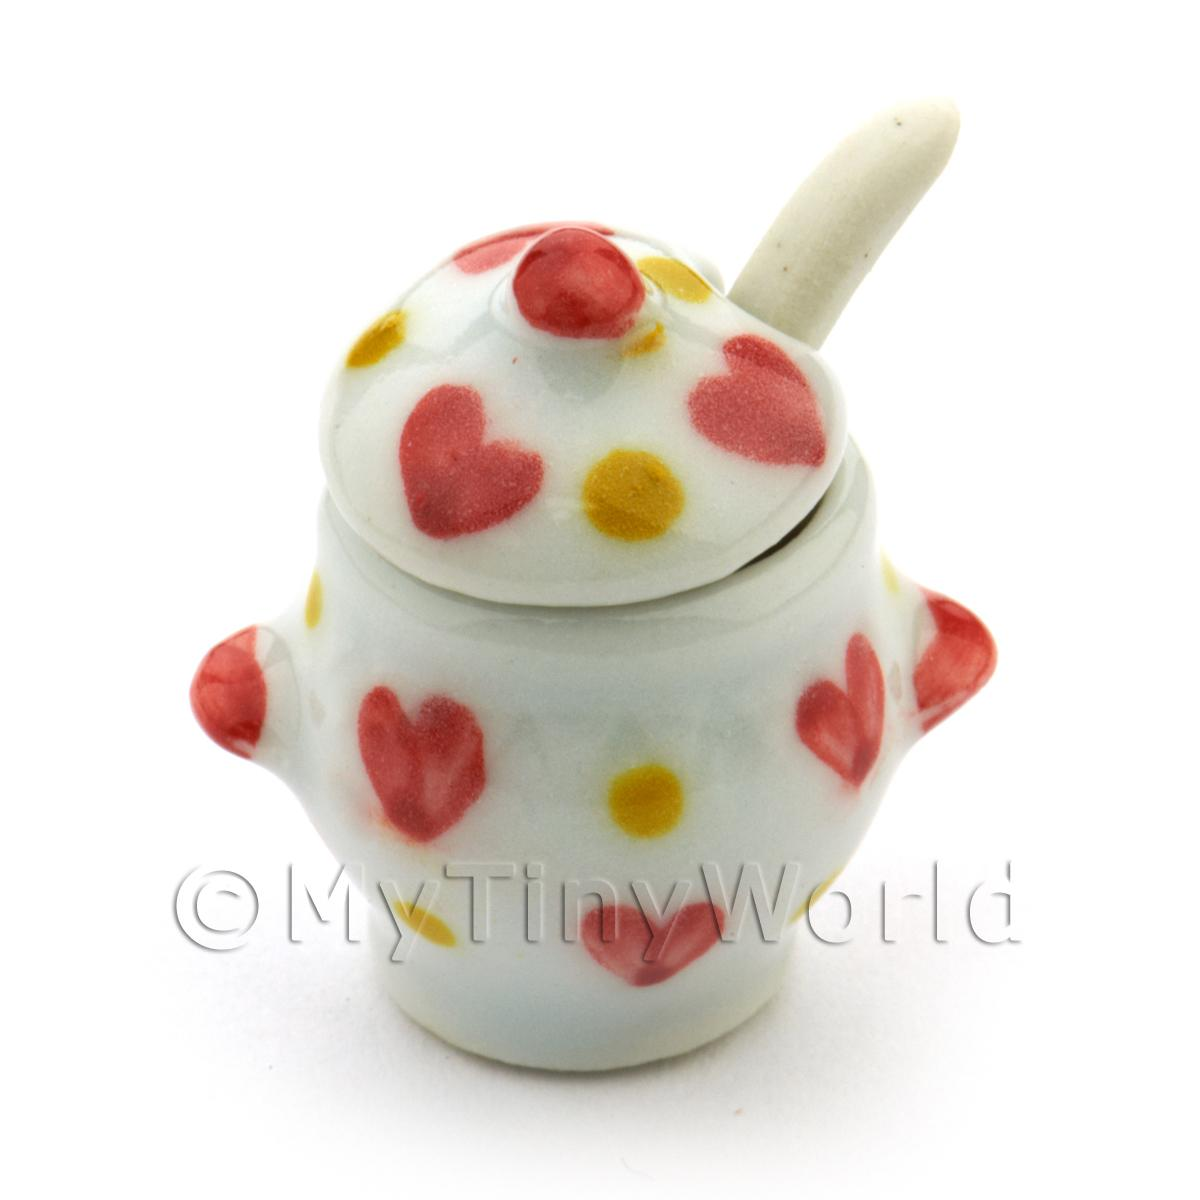 Dolls House Miniature Ceramic Soup Terrain With Heart Pattern